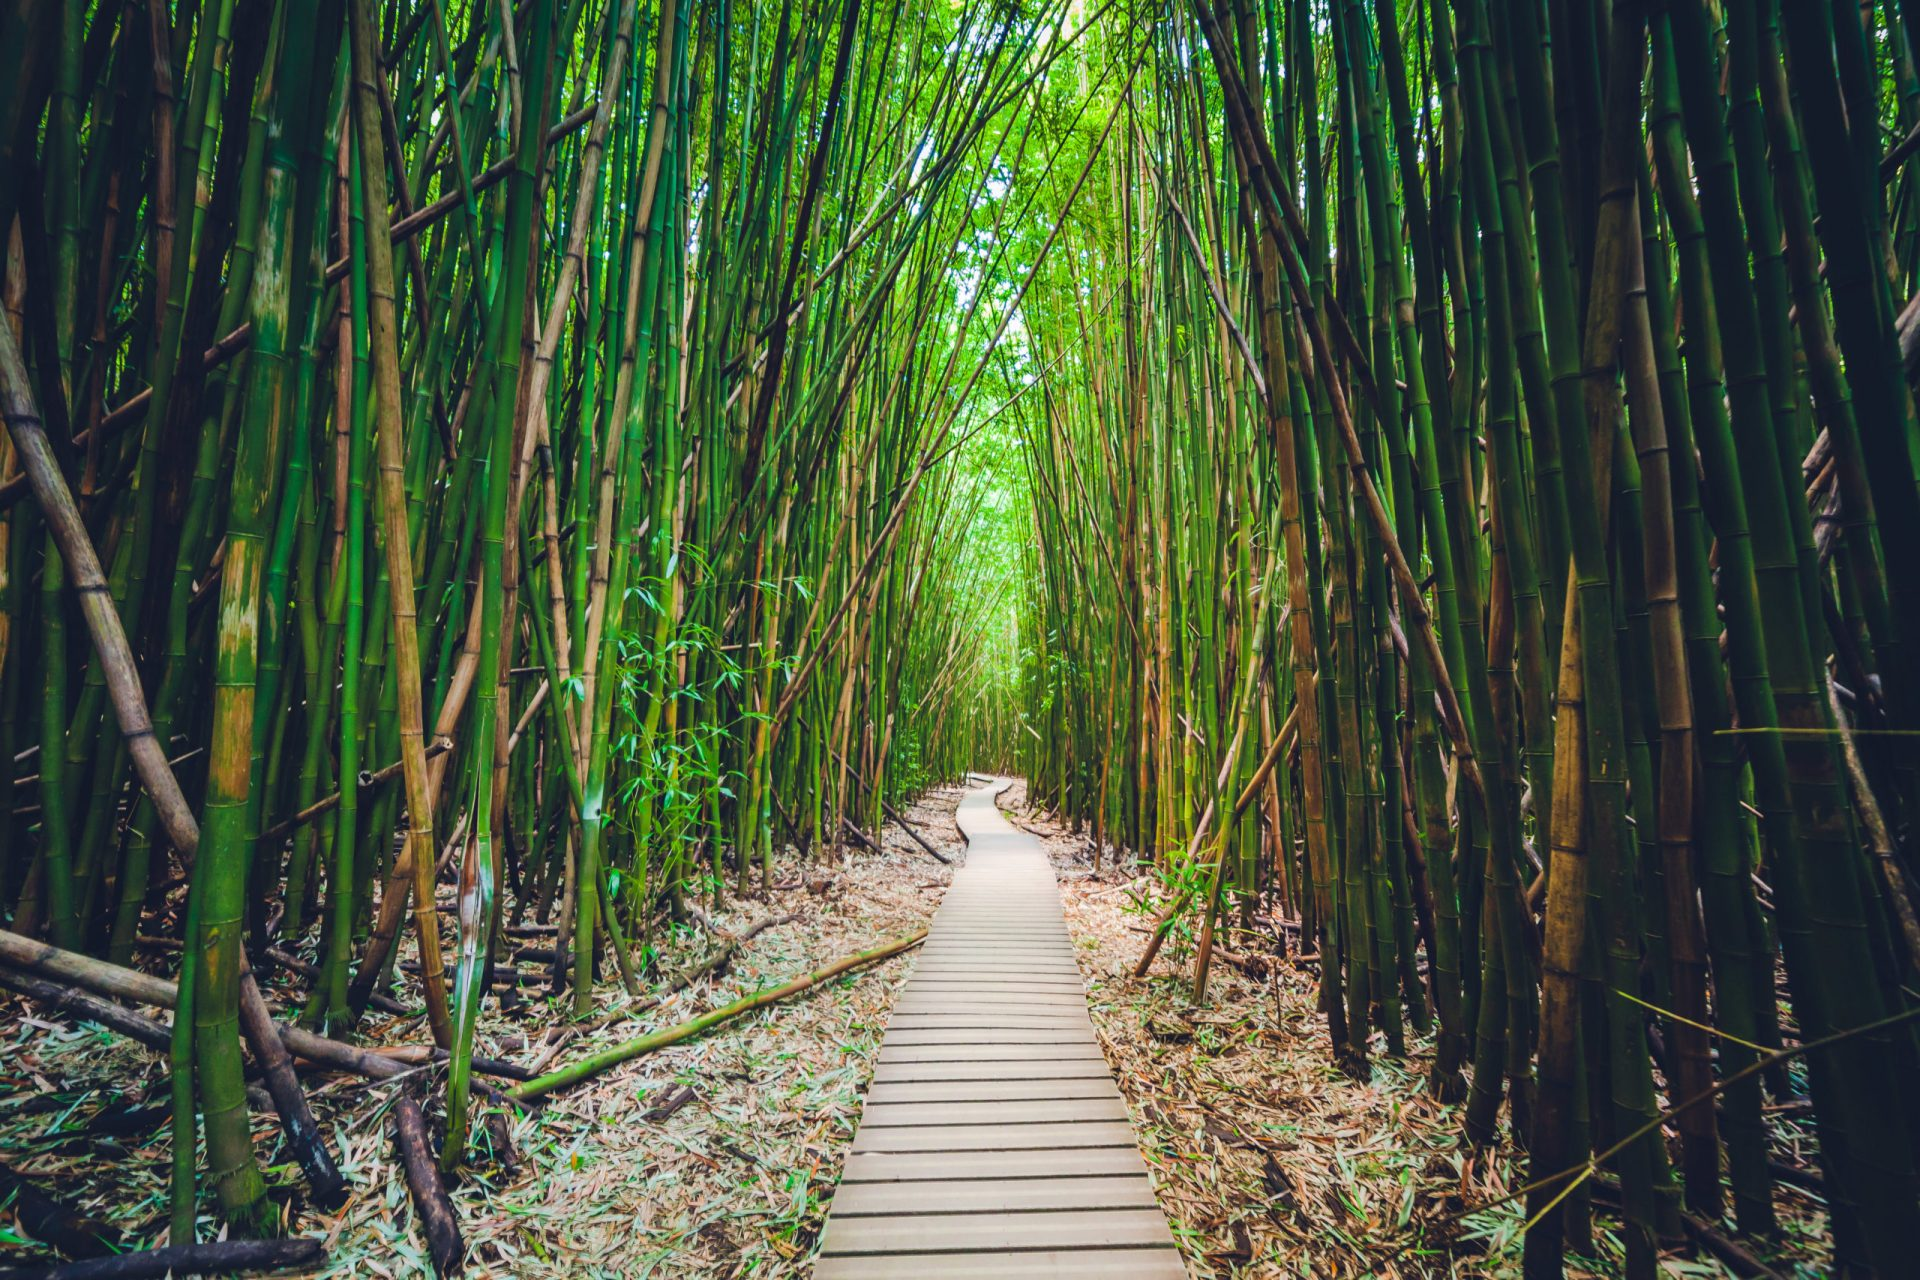 A path under the bamboo forest in Maui